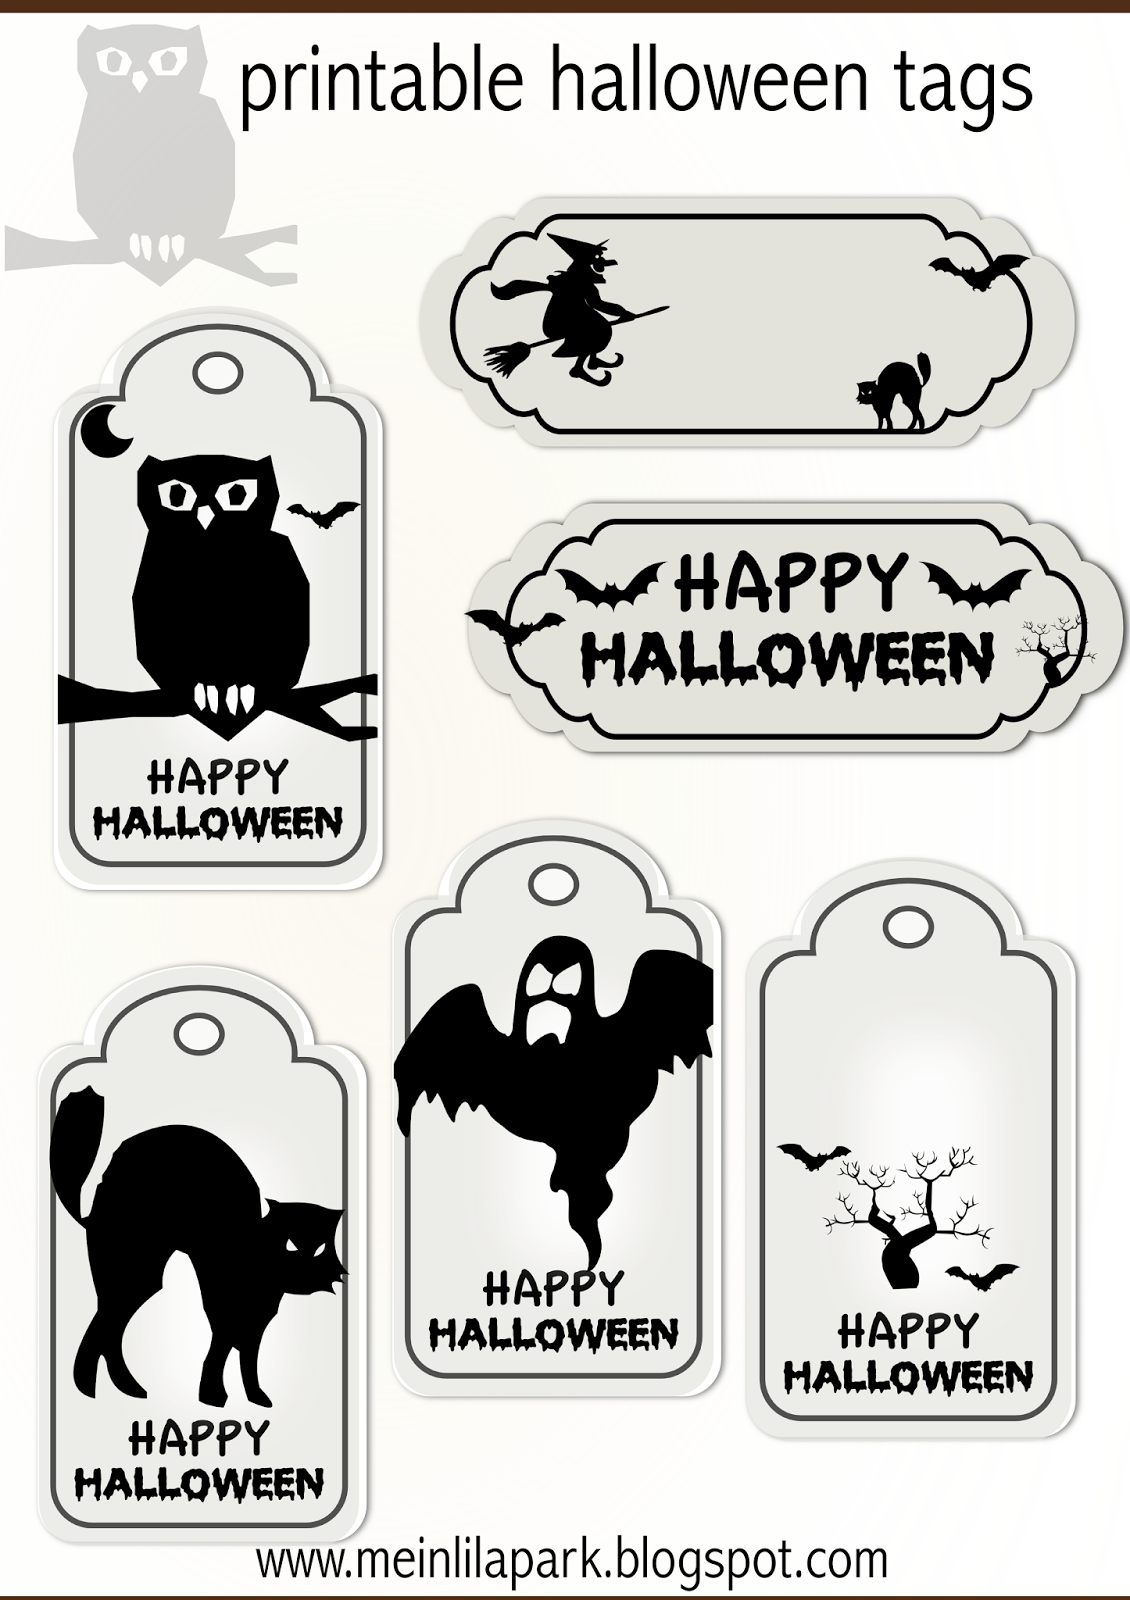 Fun Printable Halloween Tags for Scrapbooking & Paper Crafts